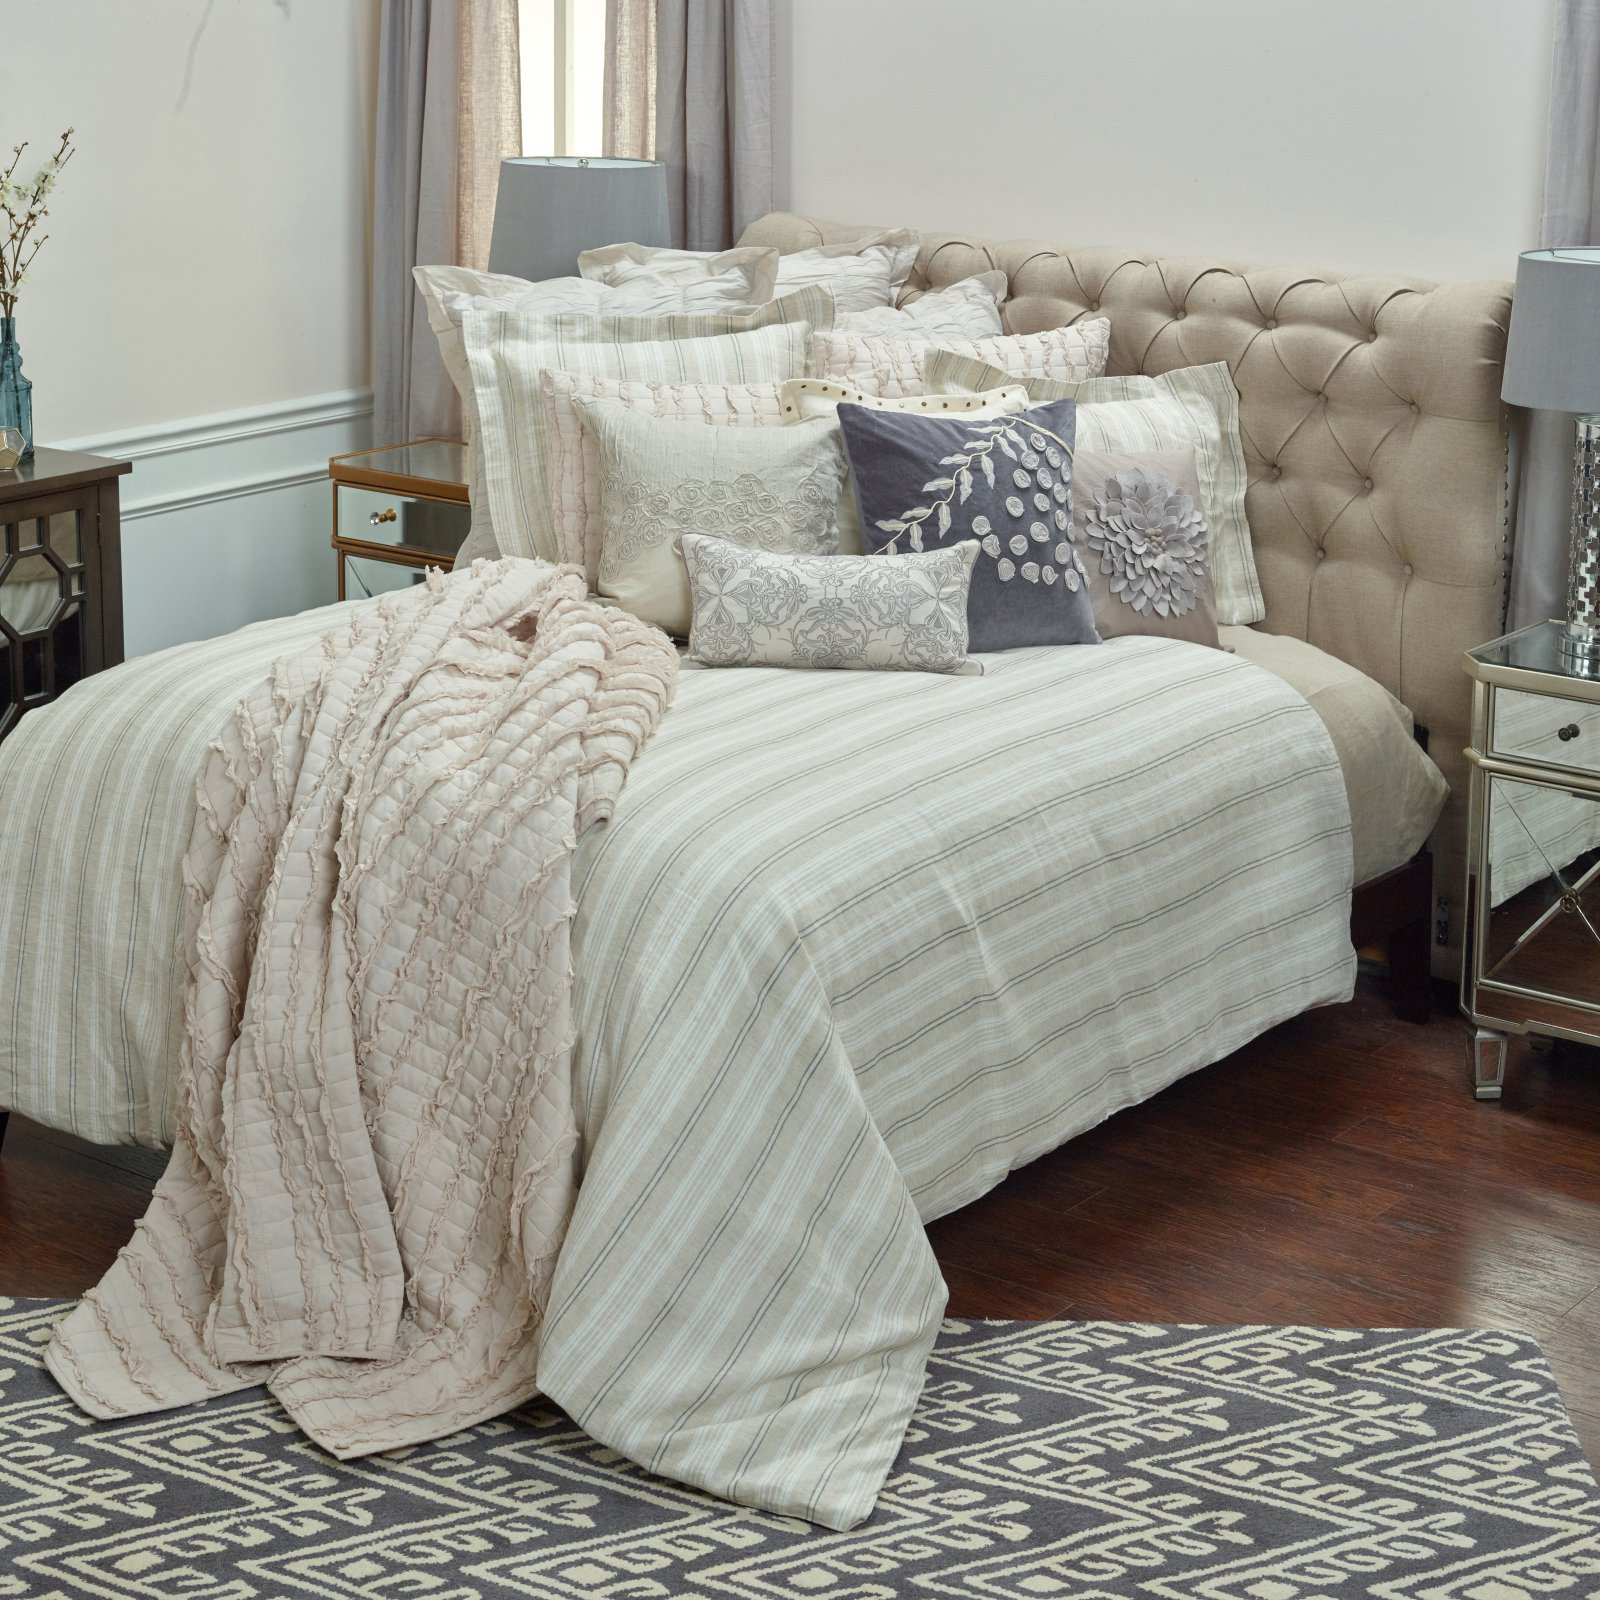 Rizzy Home Adeline Ivory Linen Duvet Bedding Cover, King